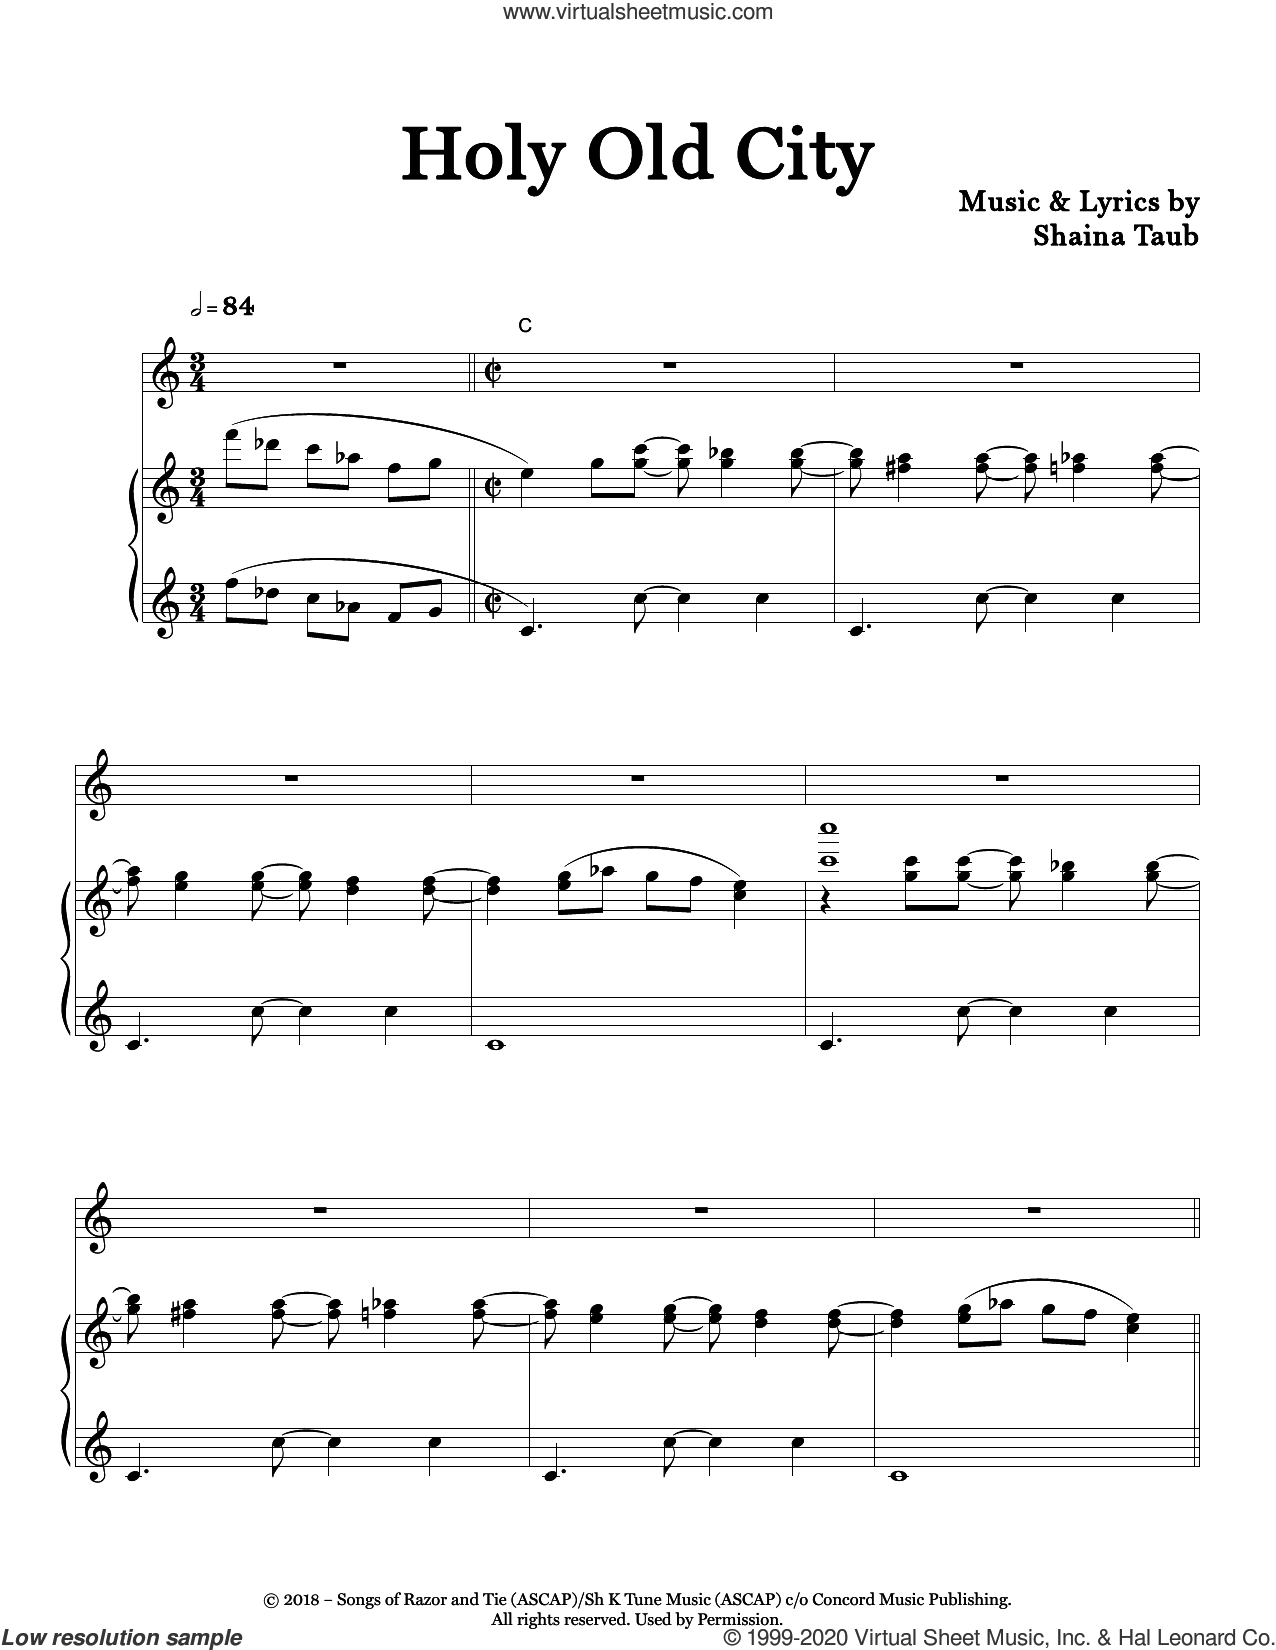 Holy Old City sheet music for voice and piano by Shaina Taub, intermediate skill level